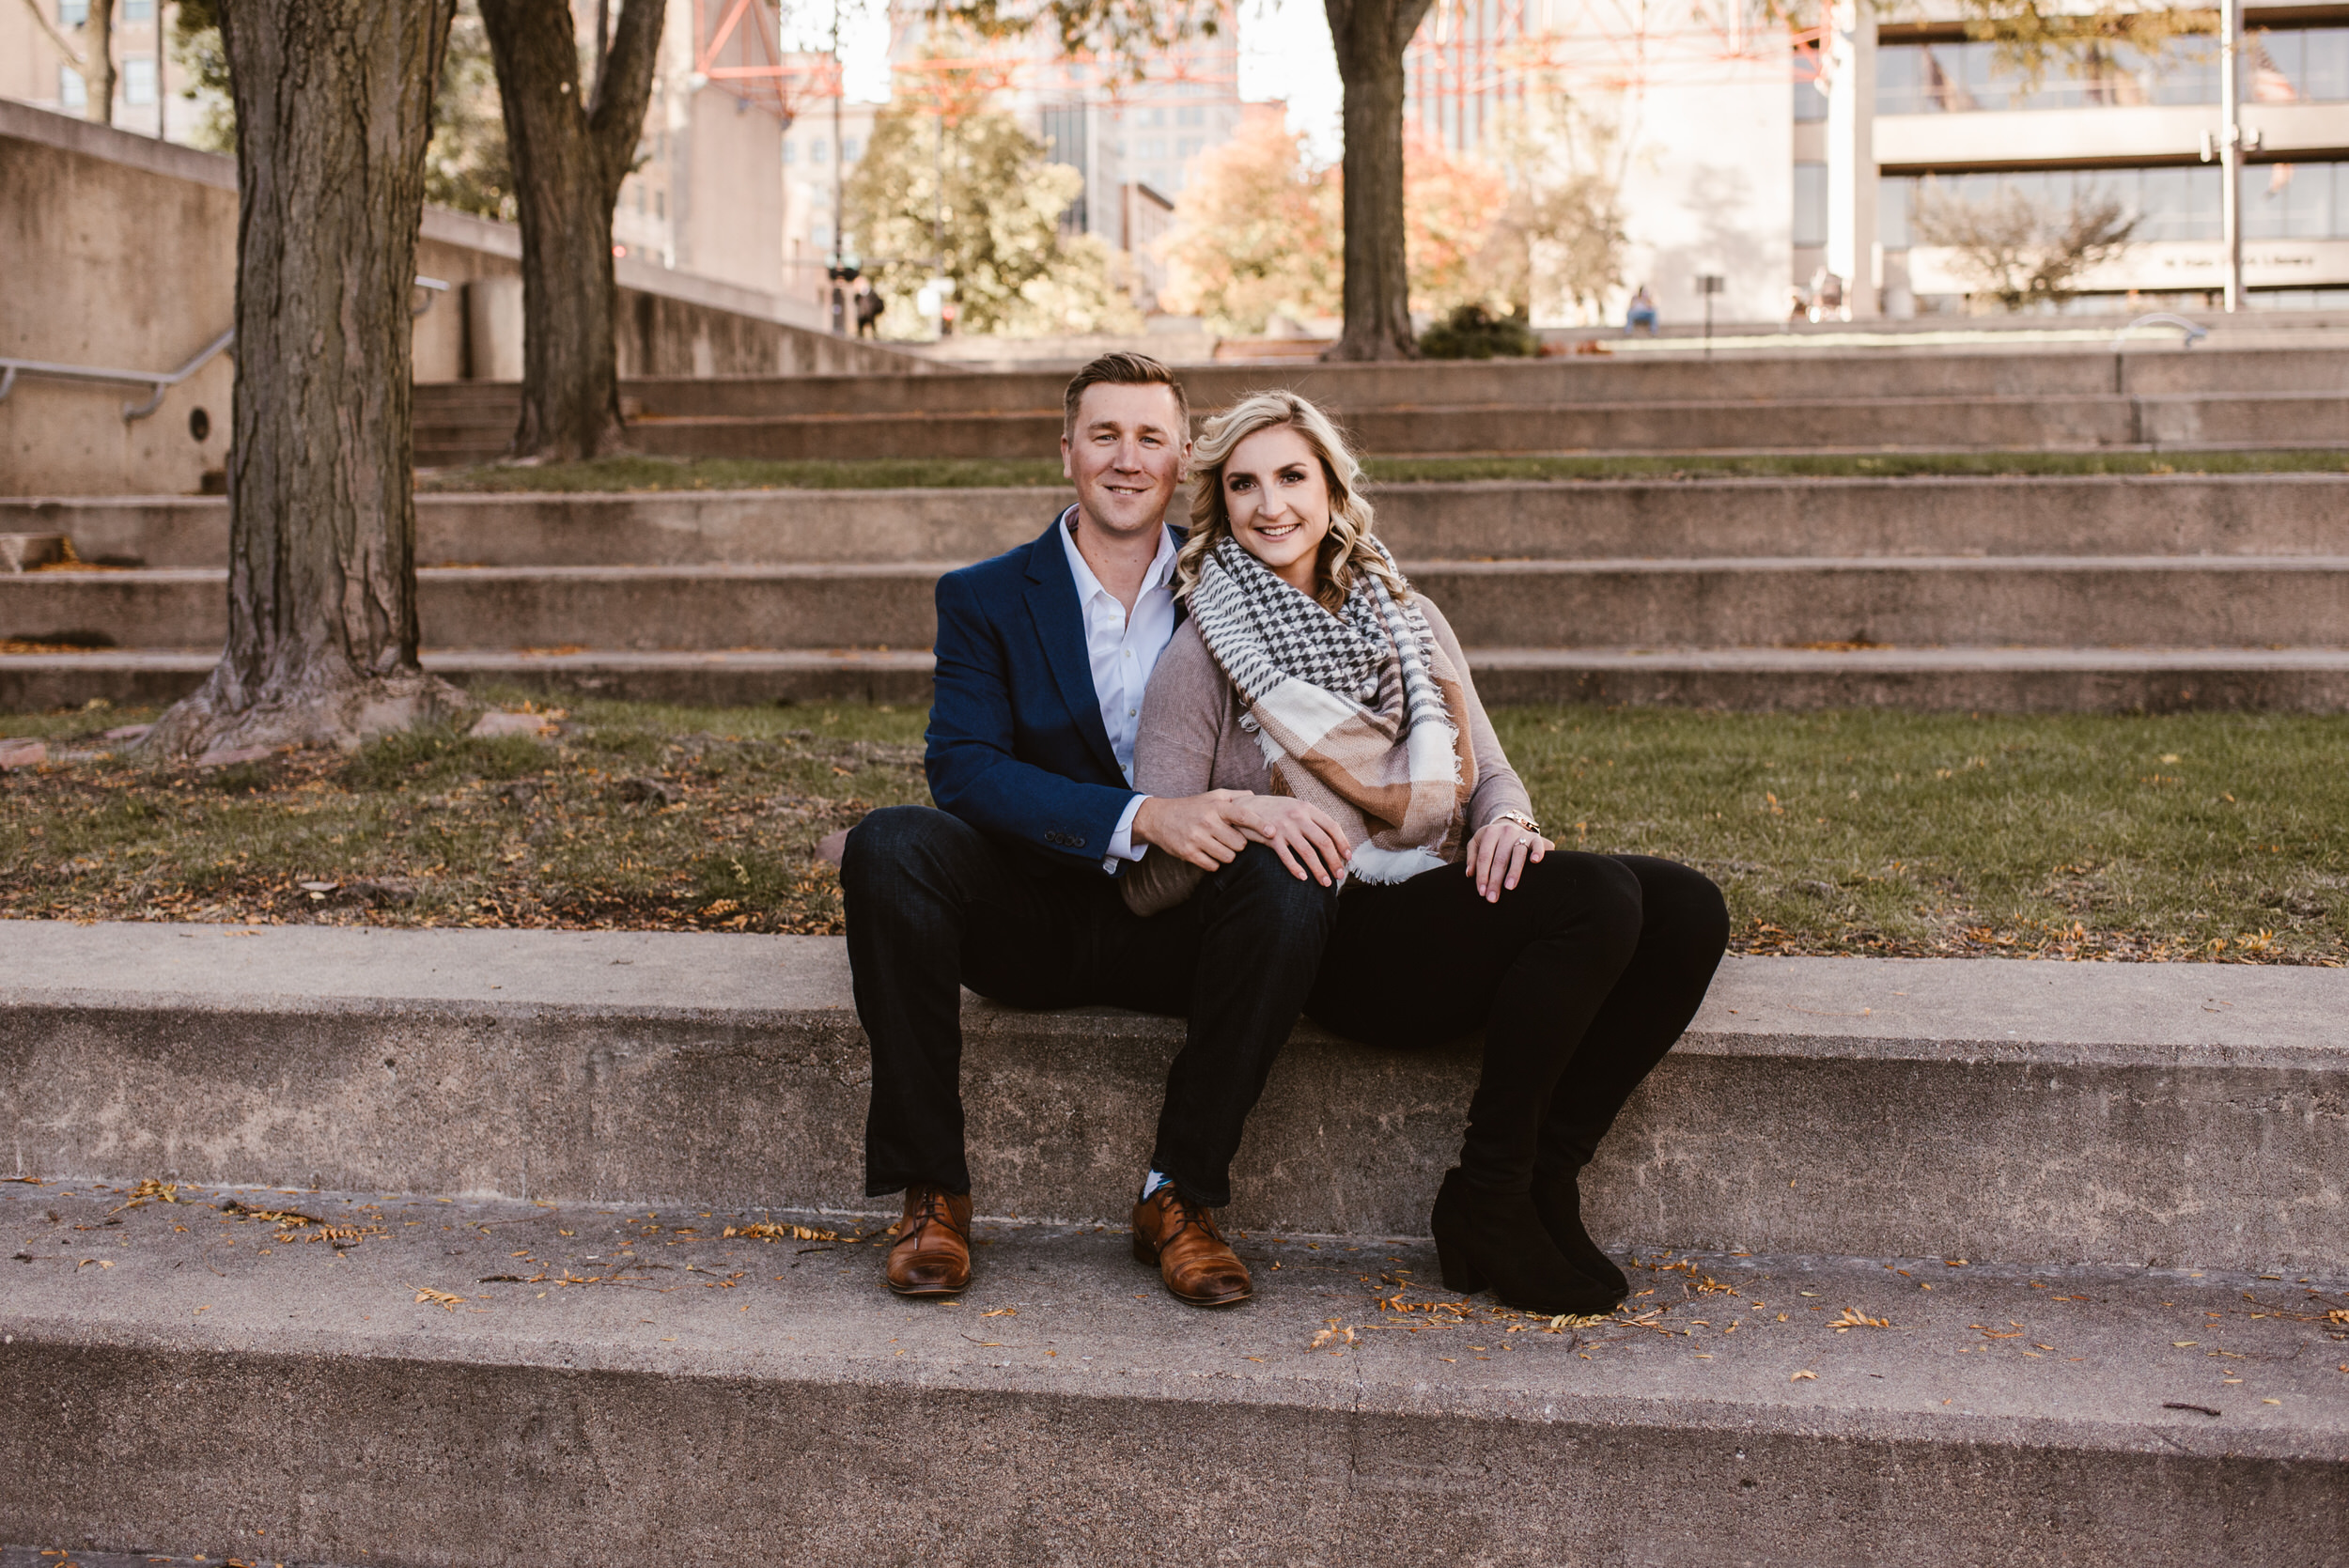 Gene Leahy Mall Omaha Engagement Session Kaylie Sirek Photography 03.jpg